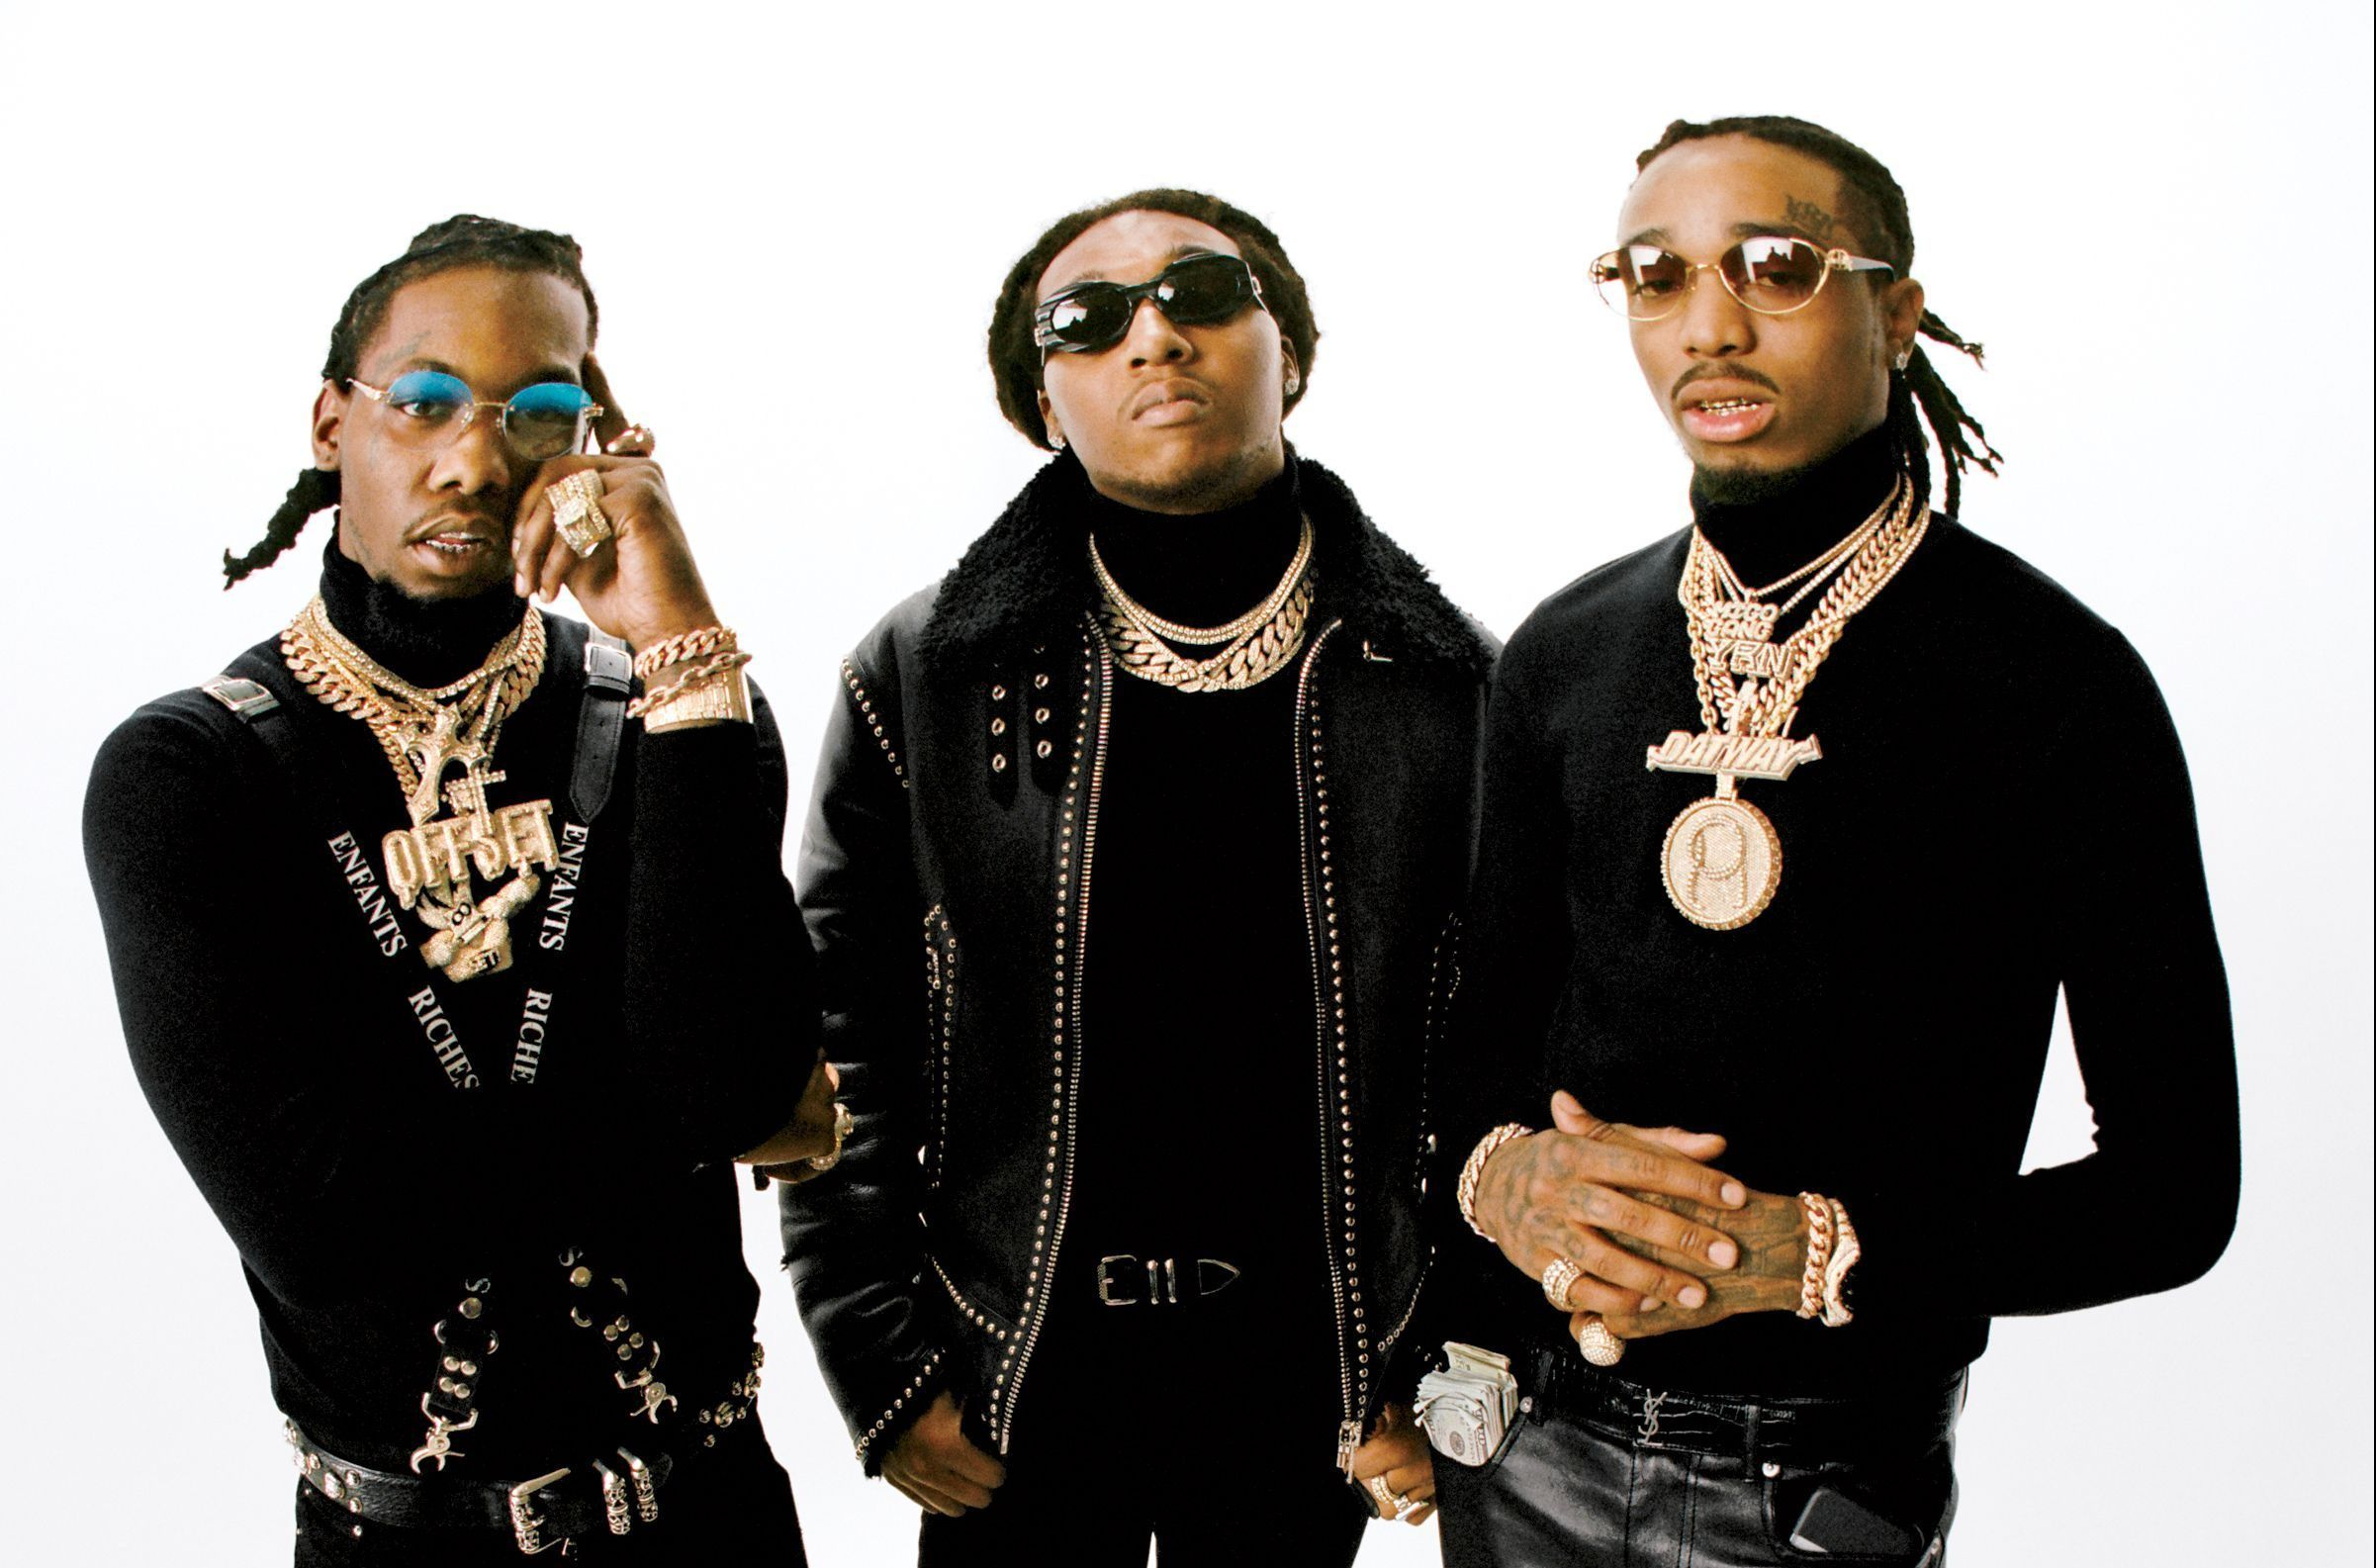 2402x1585 Migos on Cardi B, New Album, Success, Weed, Money, Ambition ...